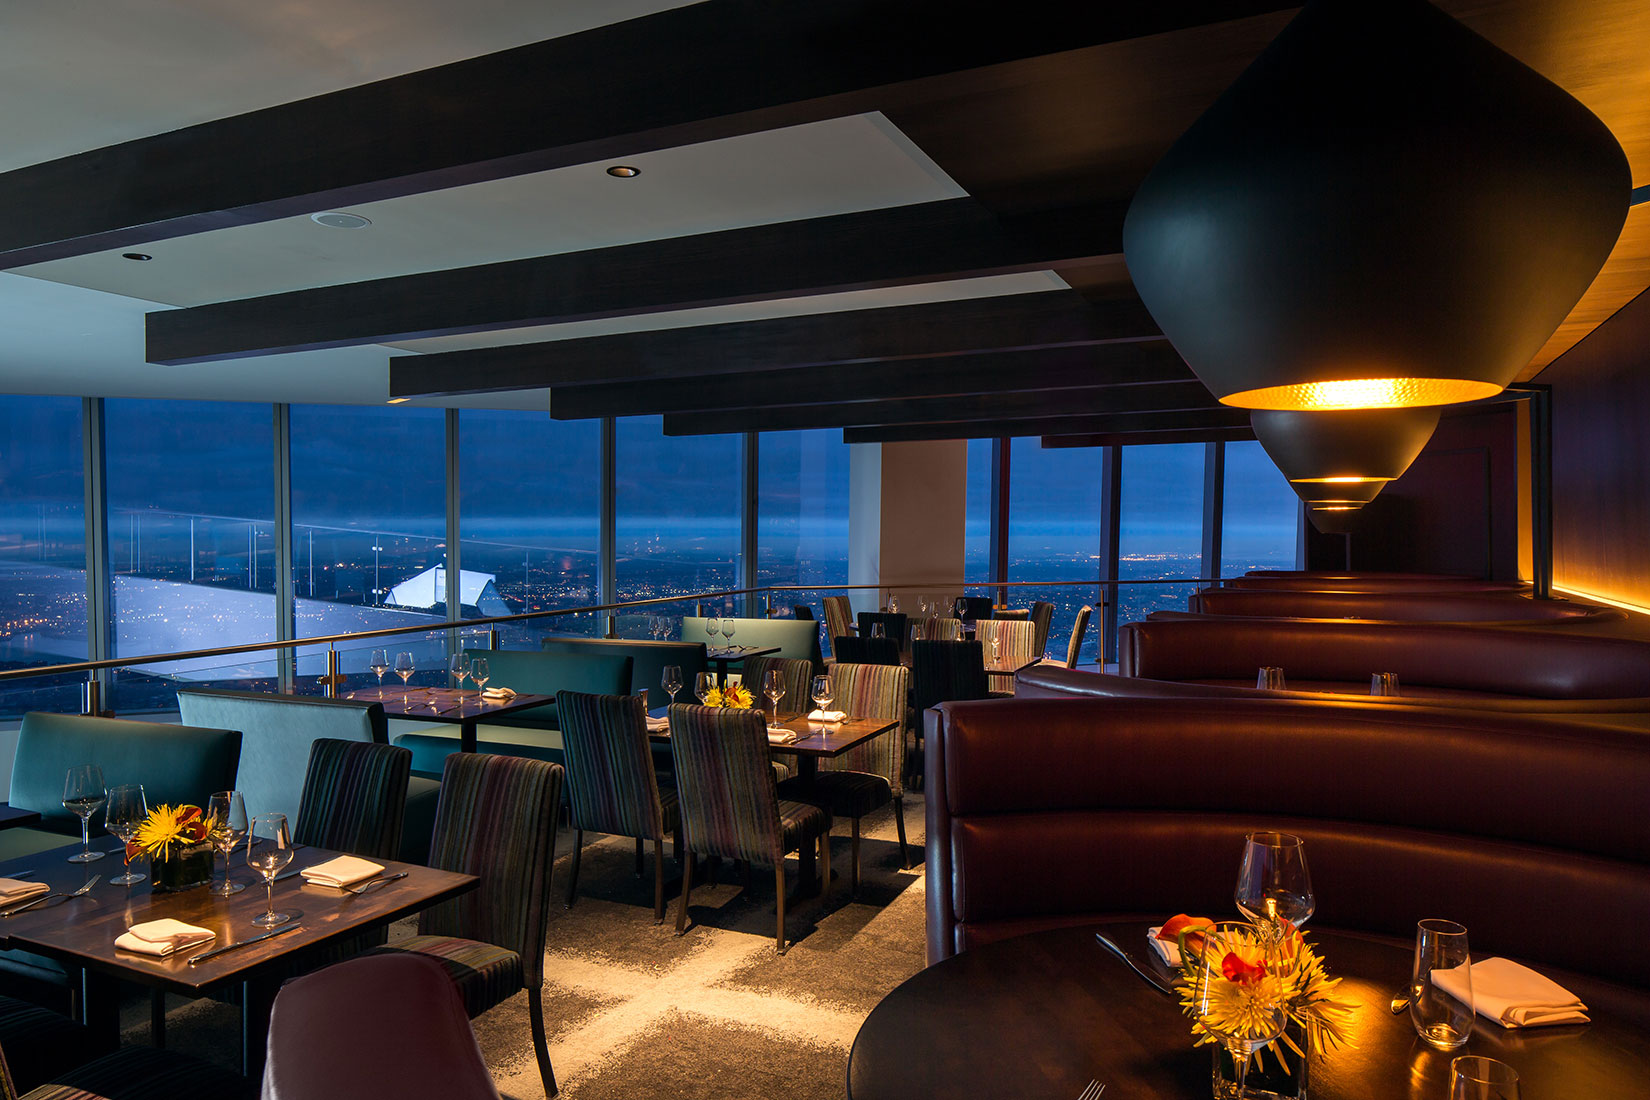 restaurant observation Reserve a table at observatory bar & grill, dubai on tripadvisor: see 1,093 unbiased reviews of observatory bar & grill, rated 4 of 5 on tripadvisor and ranked #283 of 10,235 restaurants in dubai.